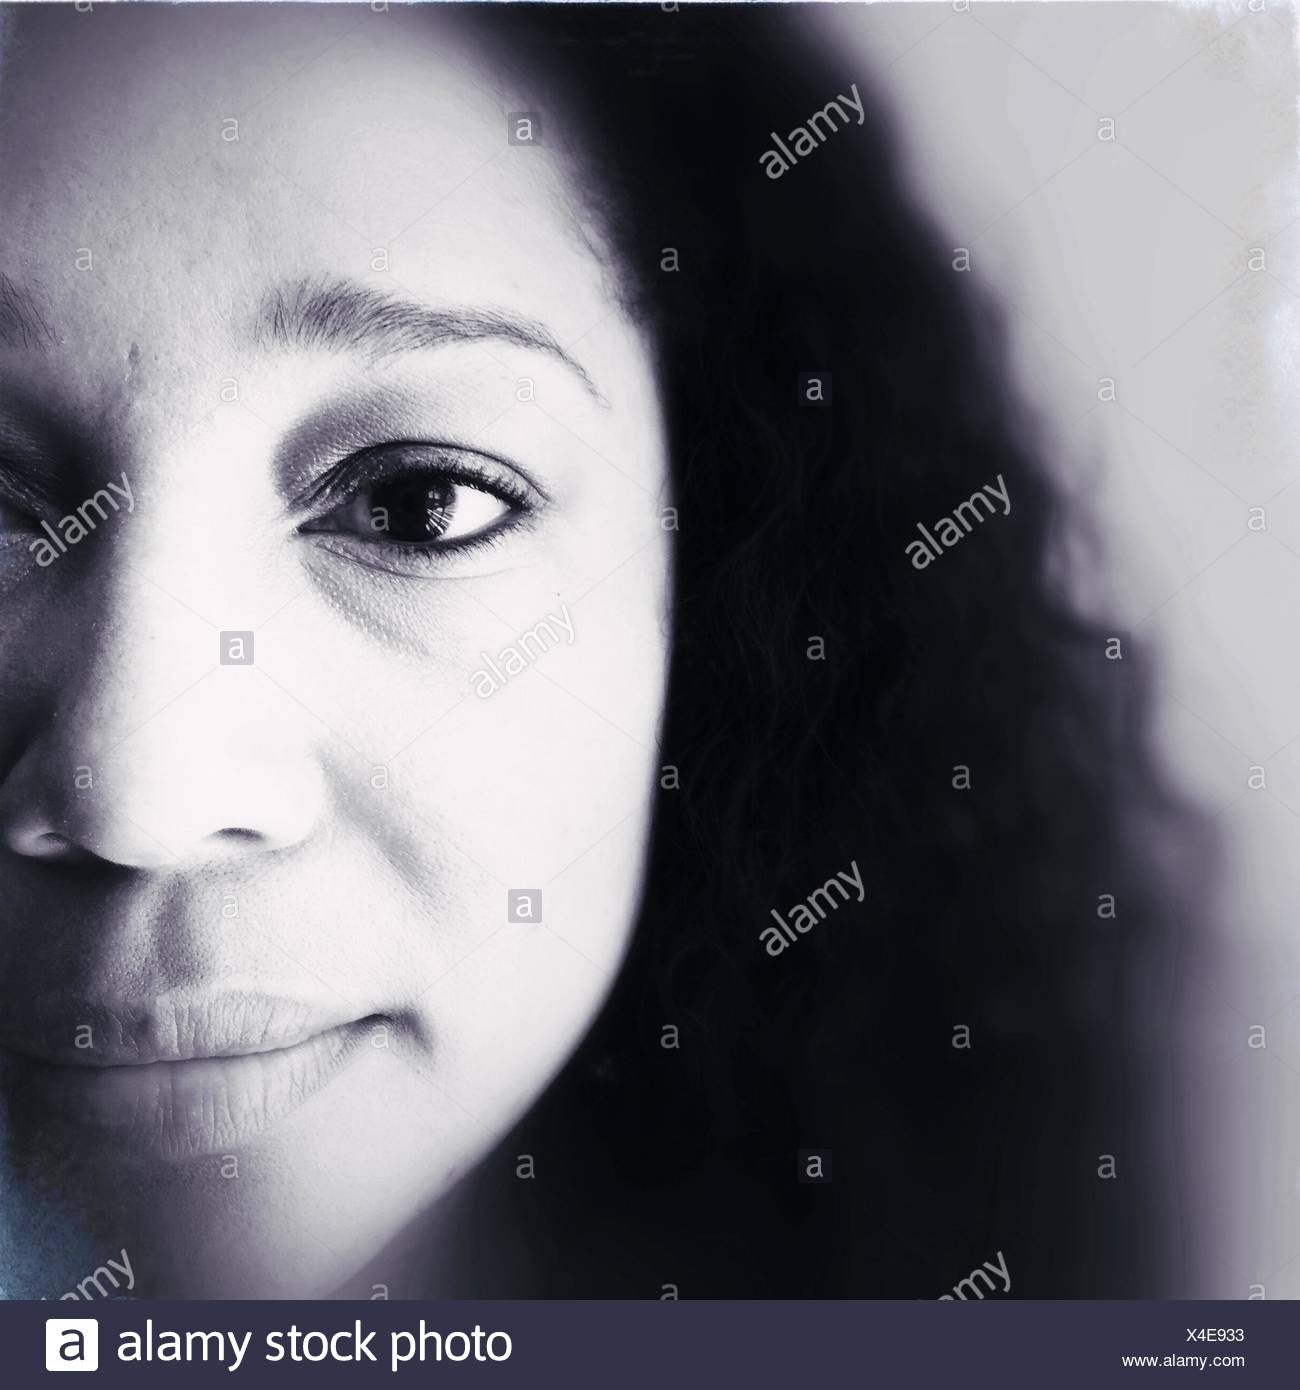 Extreme Close Up Portrait of Woman Photo Stock